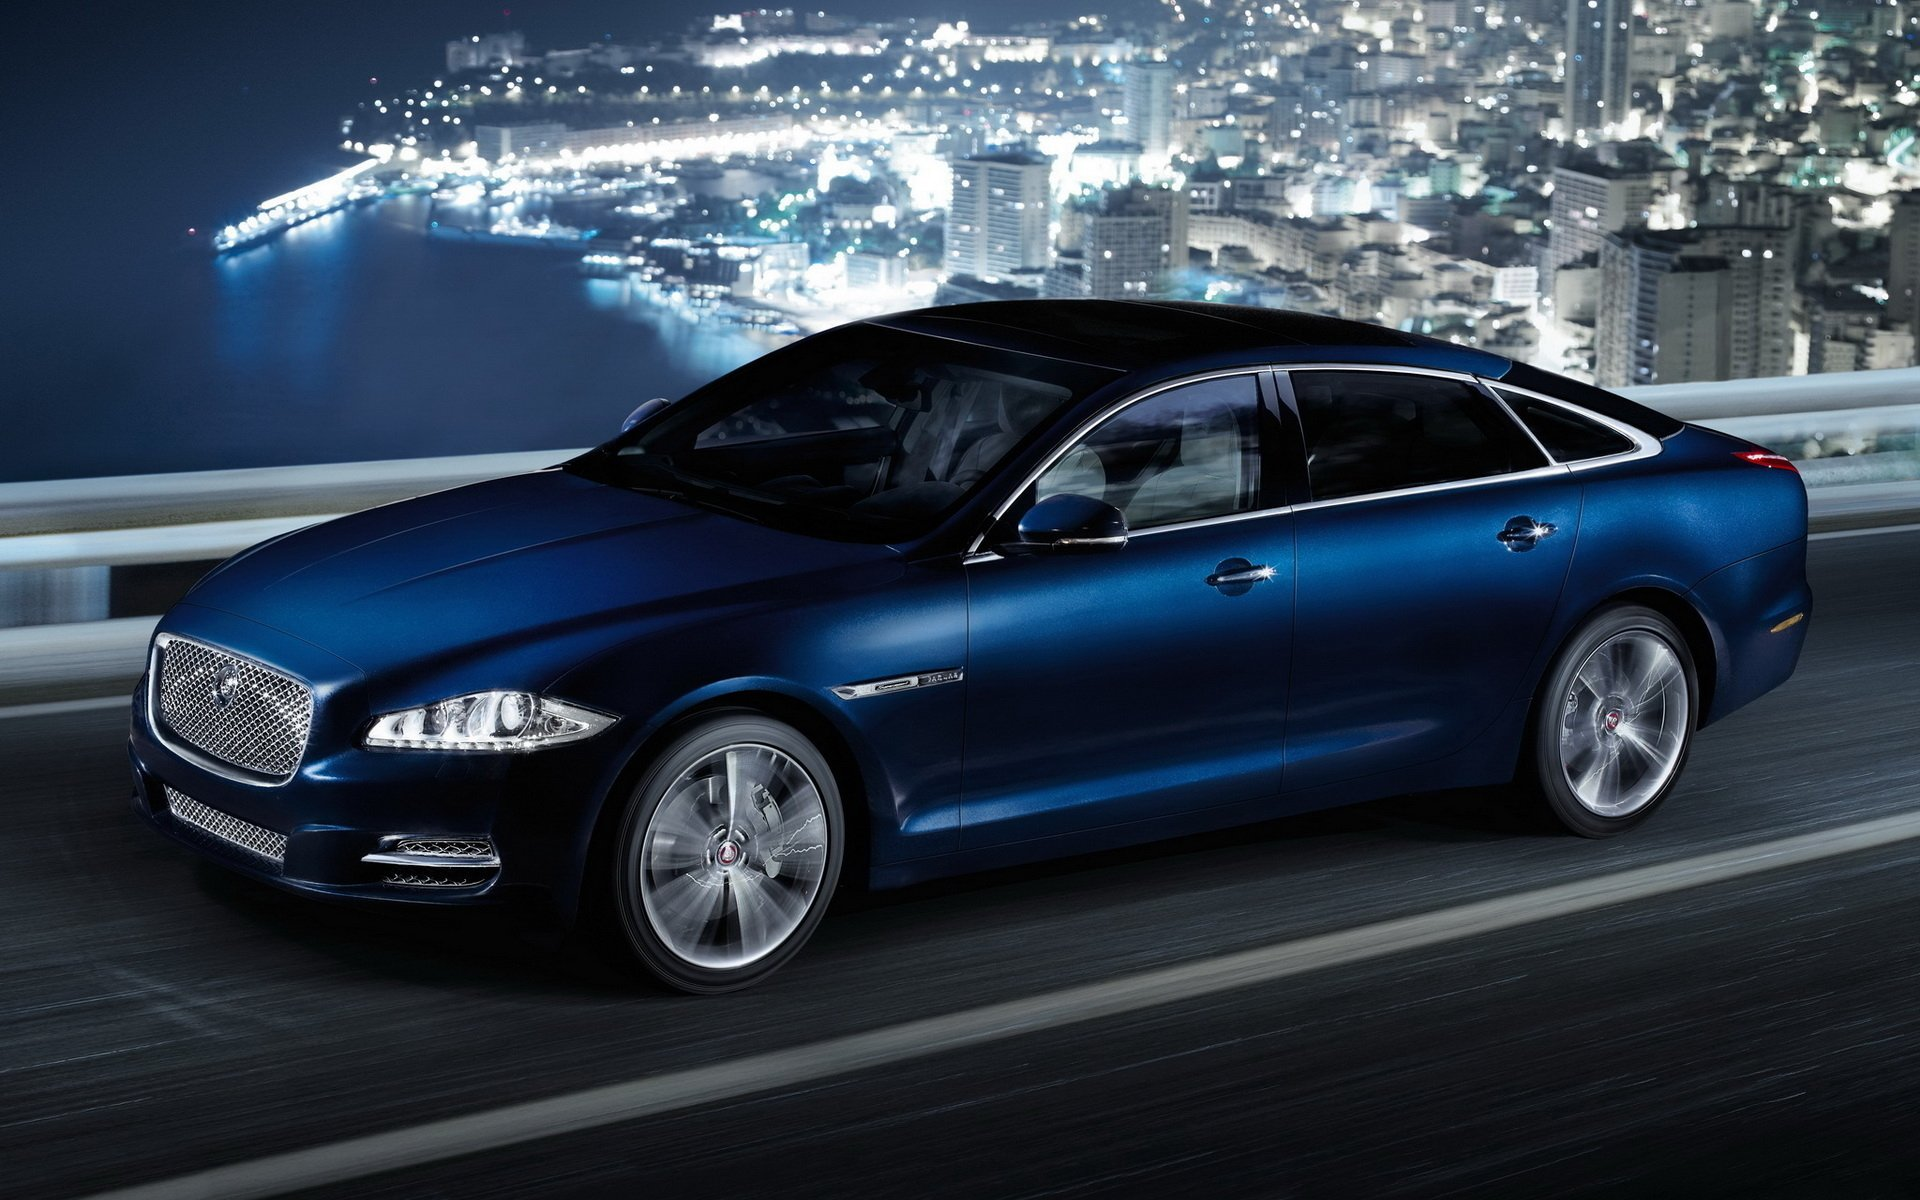 11 Jaguar Xj Hd Wallpapers Background Images Wallpaper Abyss